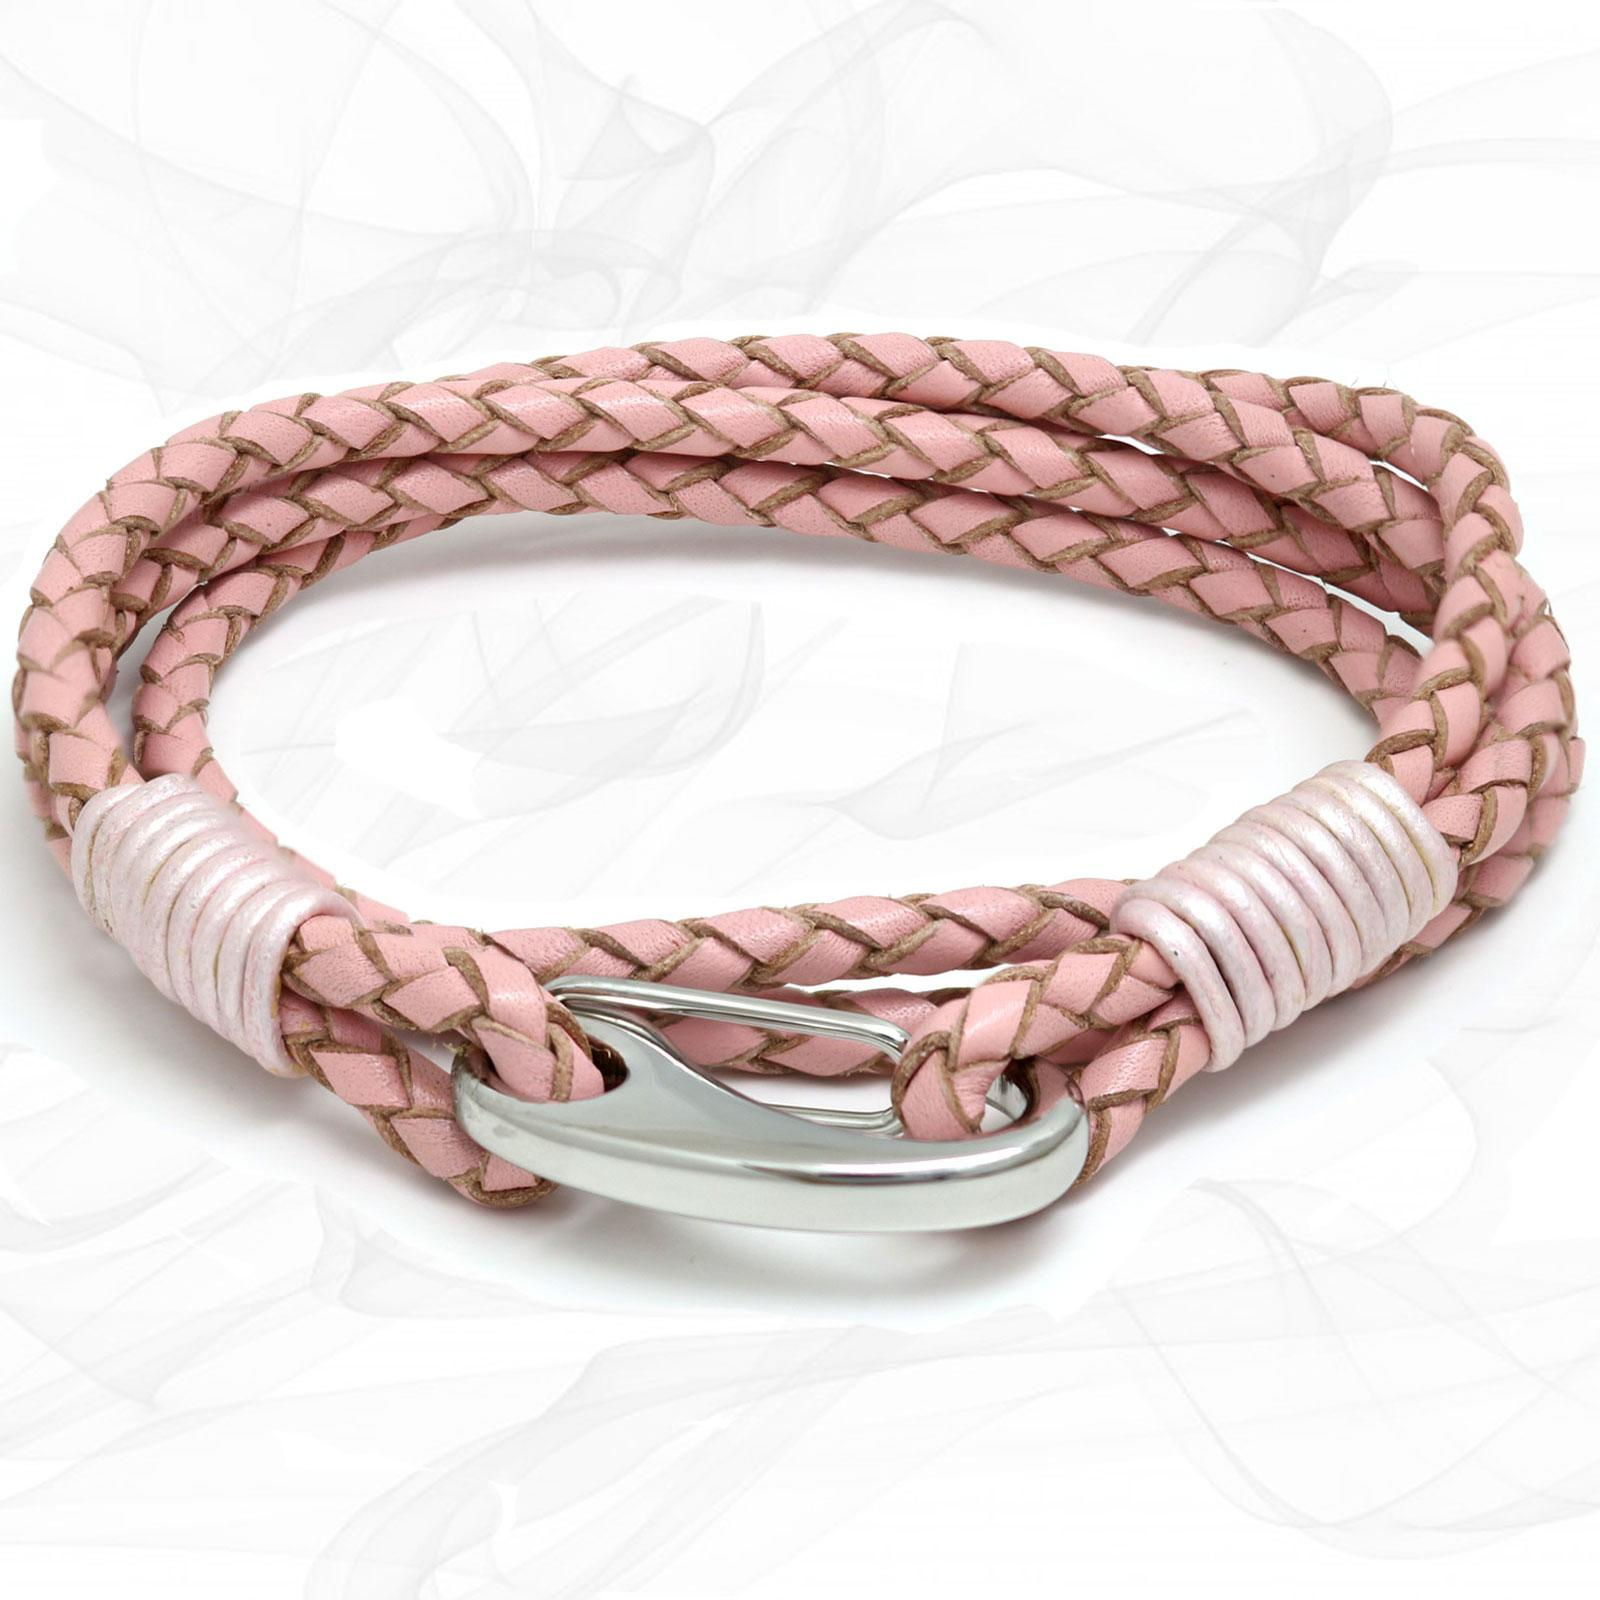 Pink Quad Wrap Bolo Leather Bracelet with Steel Lobster Clasp by Tribal Steel